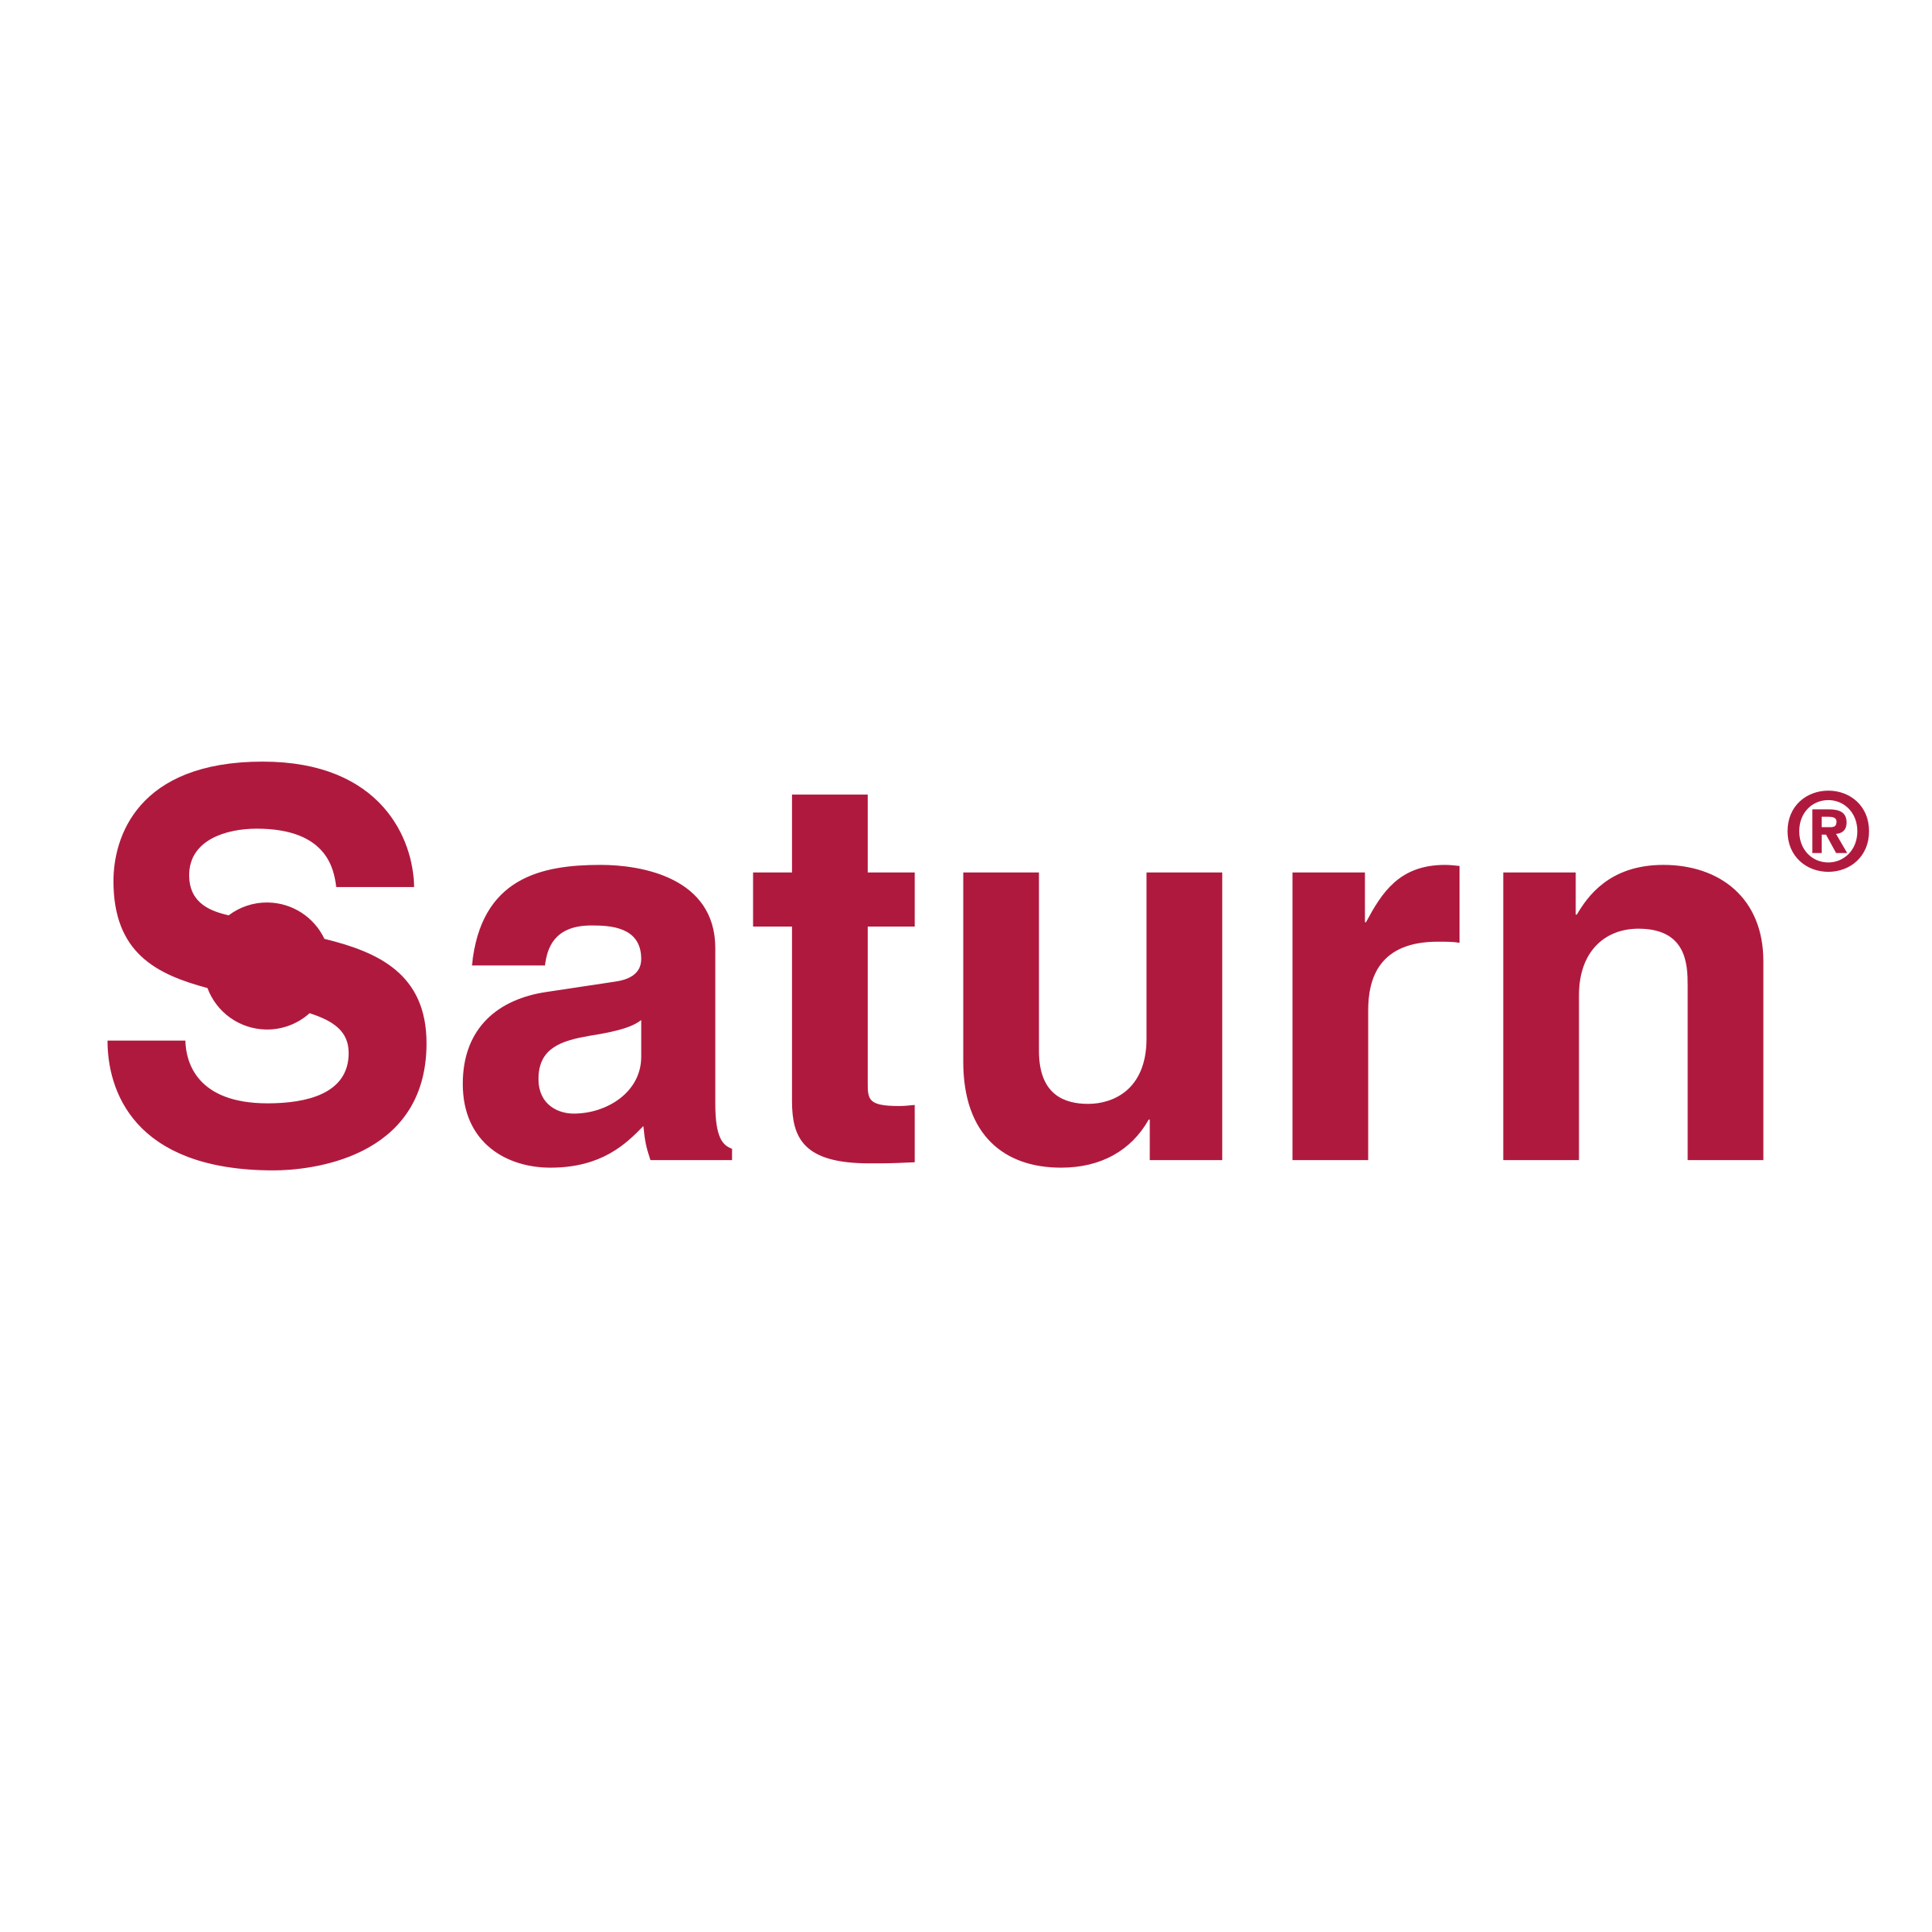 Saturn logo png. Transparent svg vector freebie